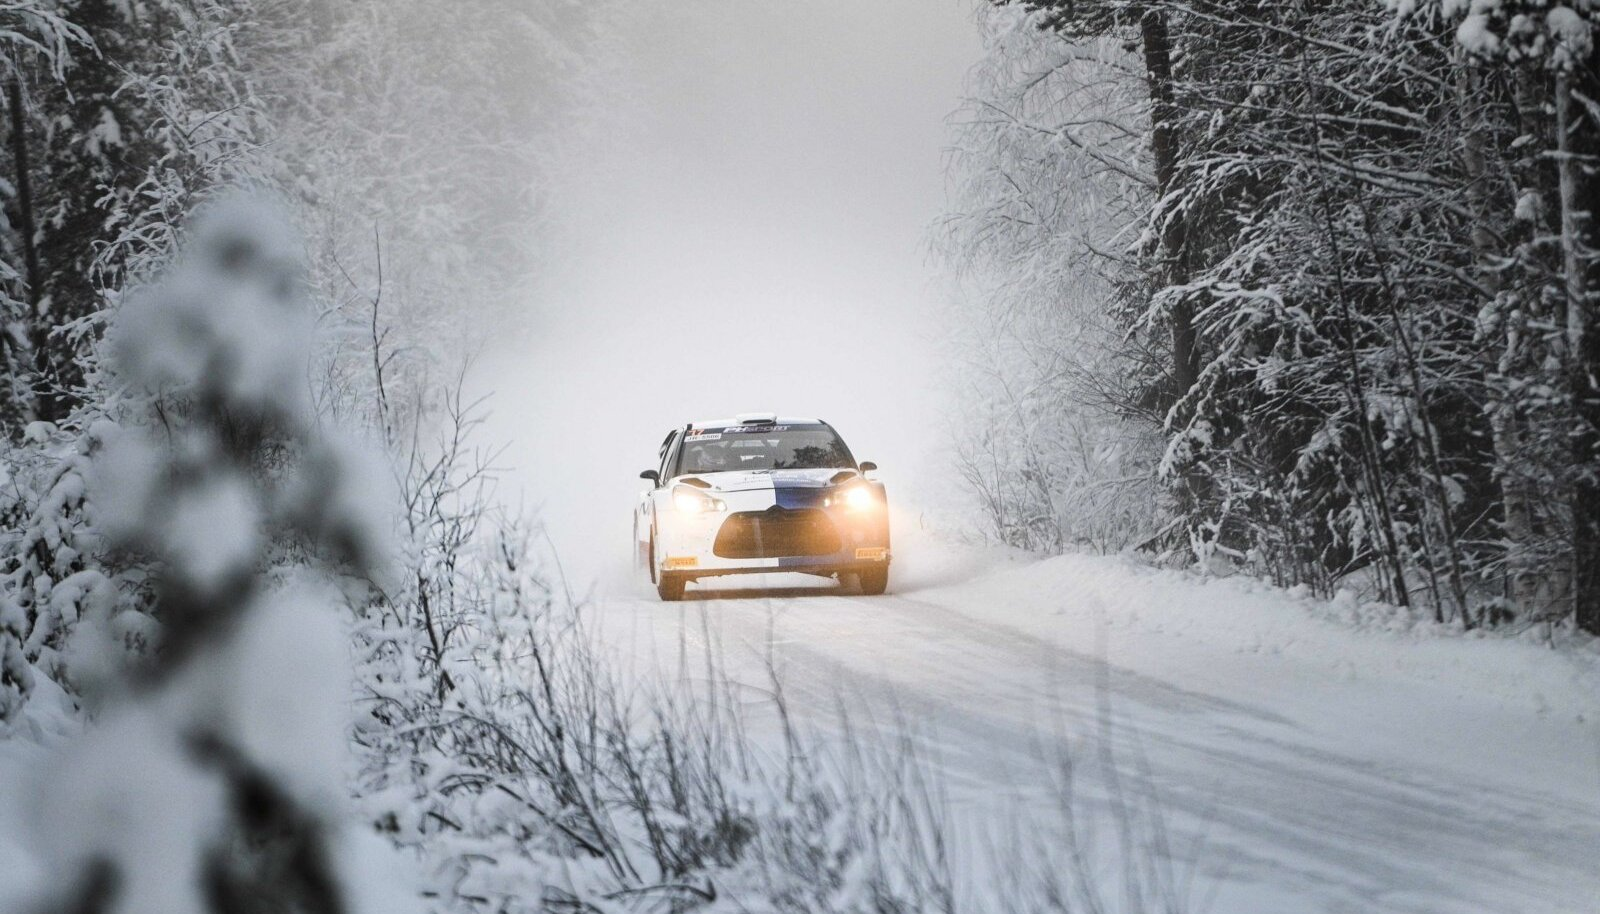 Arcitc ralli. Foto on illustreeriv.